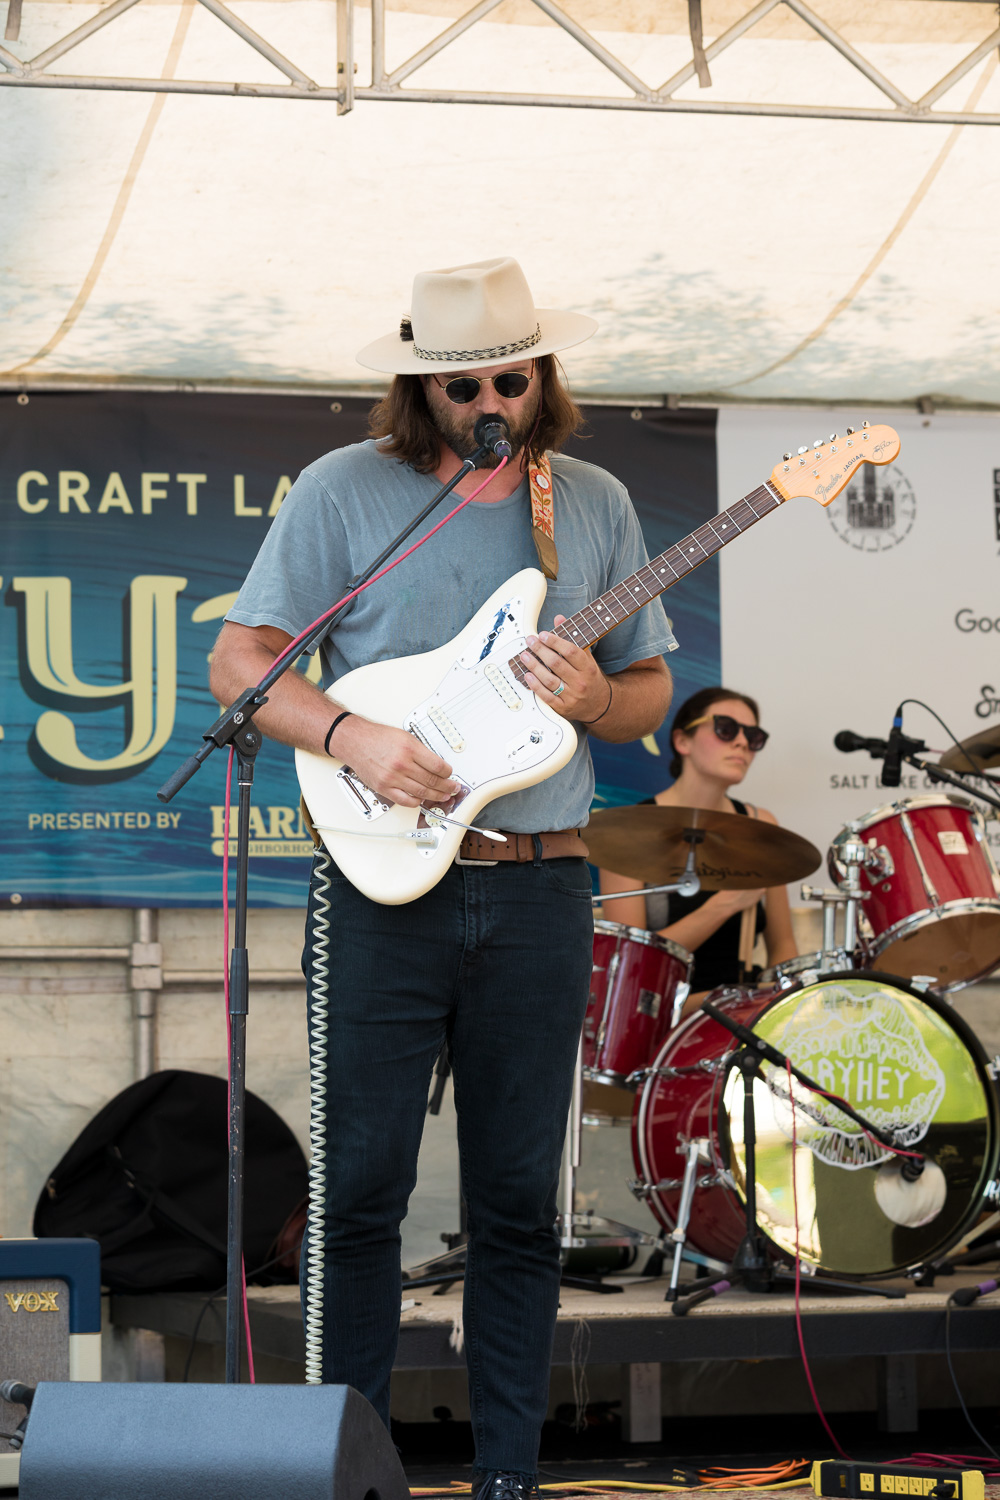 Local musicians are featured at all the stages, including the KRCL spot in the south end of Craft Lake City. Photo: Lmsorenson.net